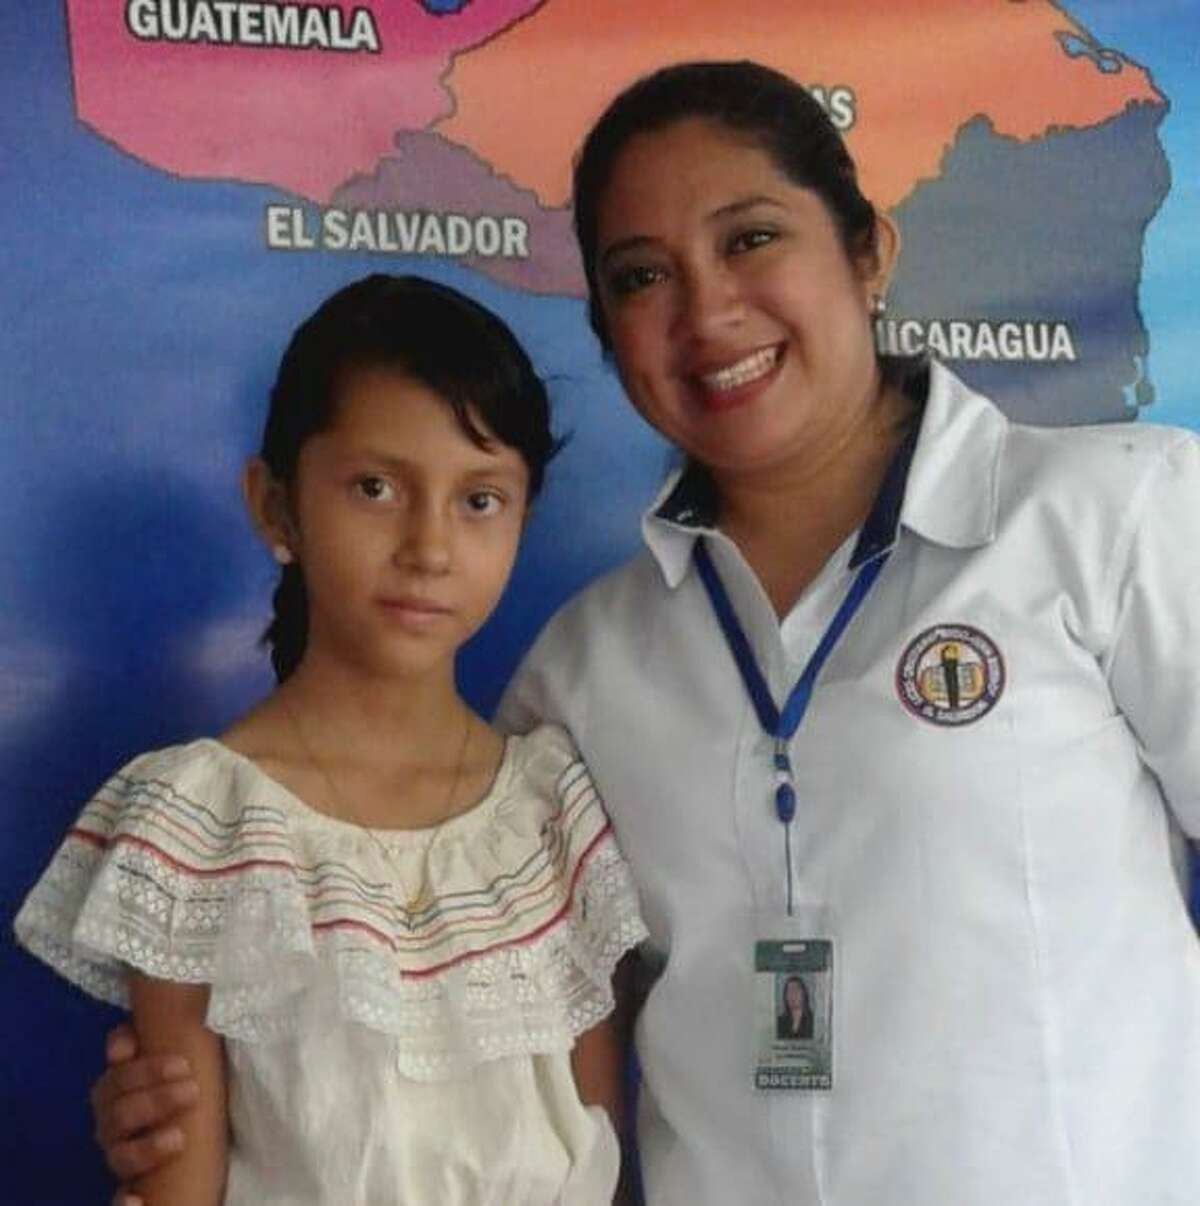 Alison, 11, is pictured here in El Salvador. The girl and her brother are in government custody after they were separated from their father at the border when the government accused him of being in a gang. The father denies it, saying he fled El Salvador because he was being targeted by gang members who tried to extort him.